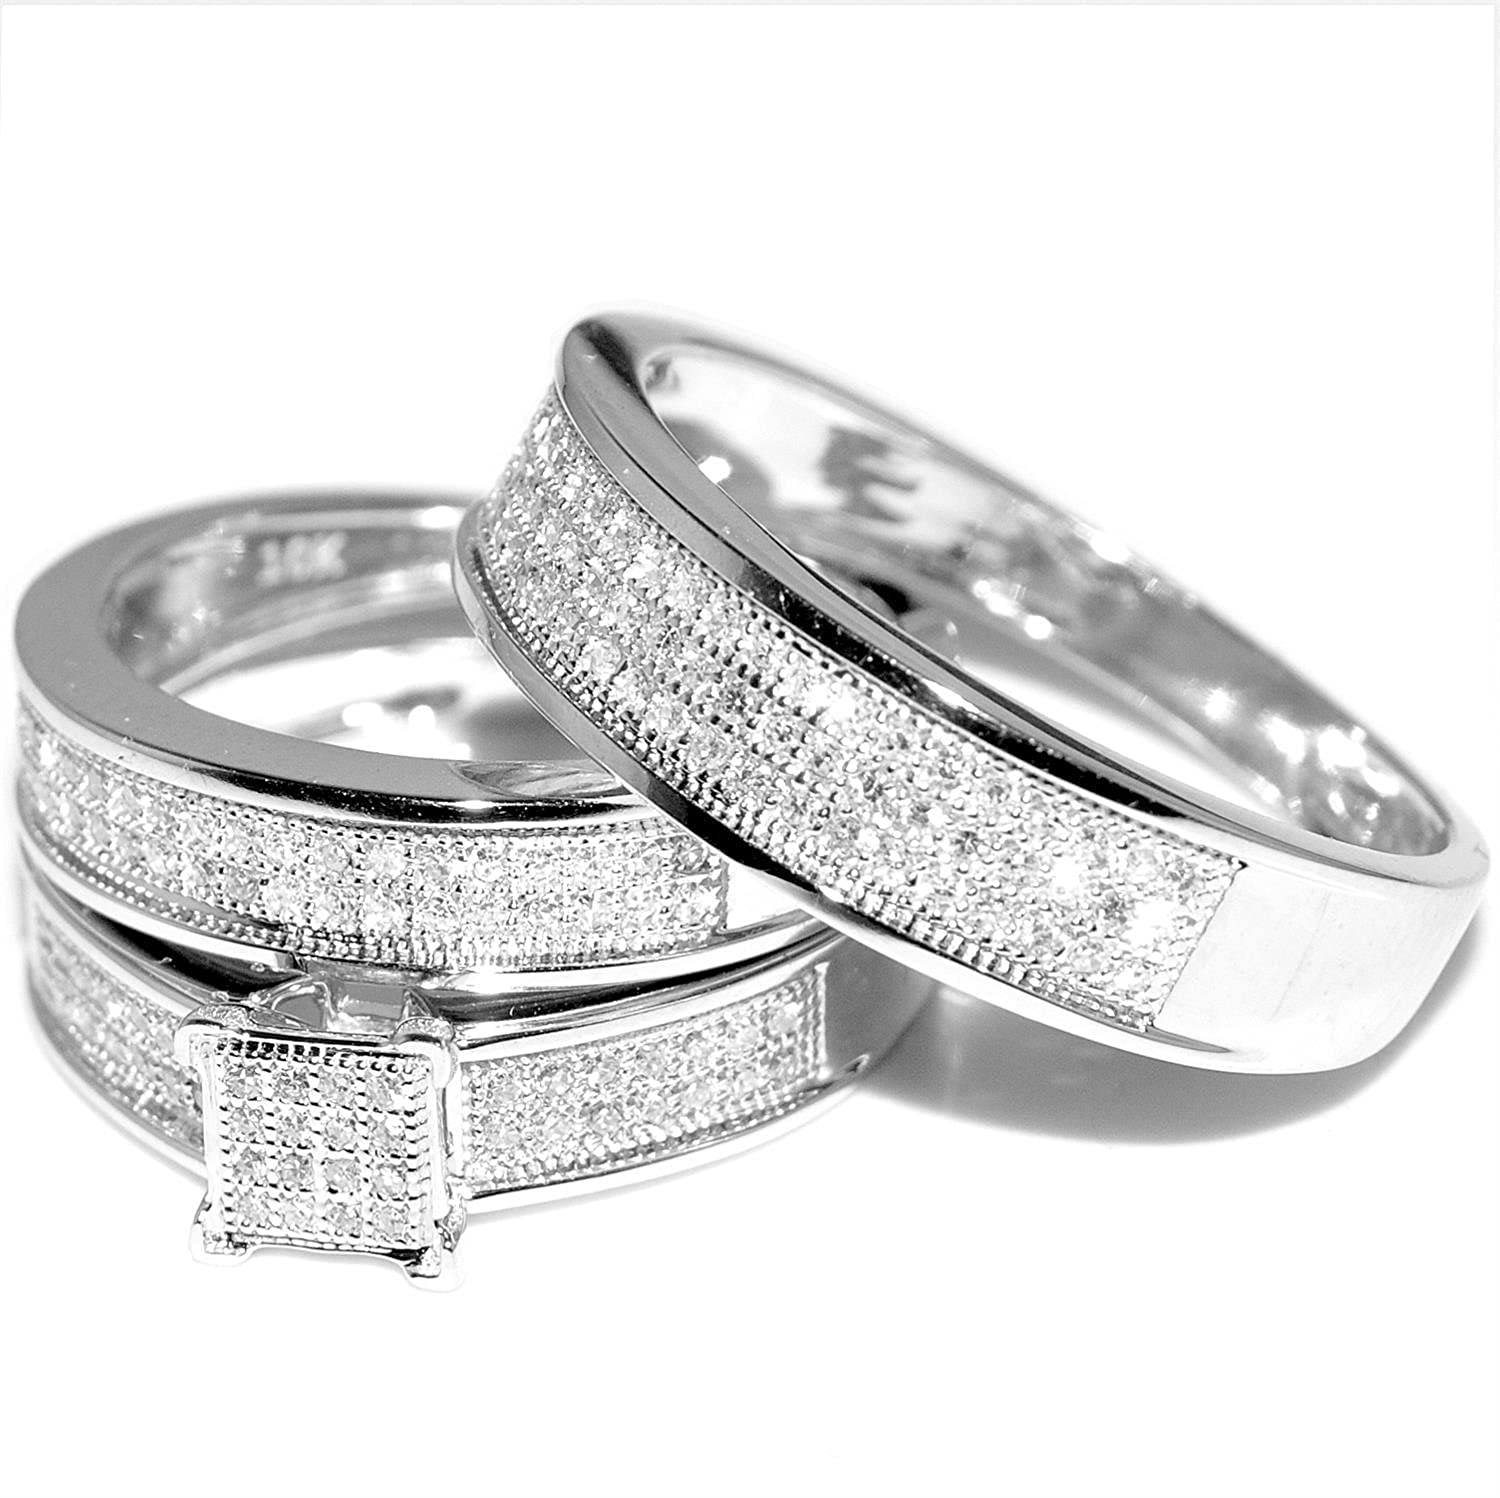 white gold trio wedding set mens womens wedding rings matching 040cttw diamondamazoncom - Mens White Gold Wedding Rings